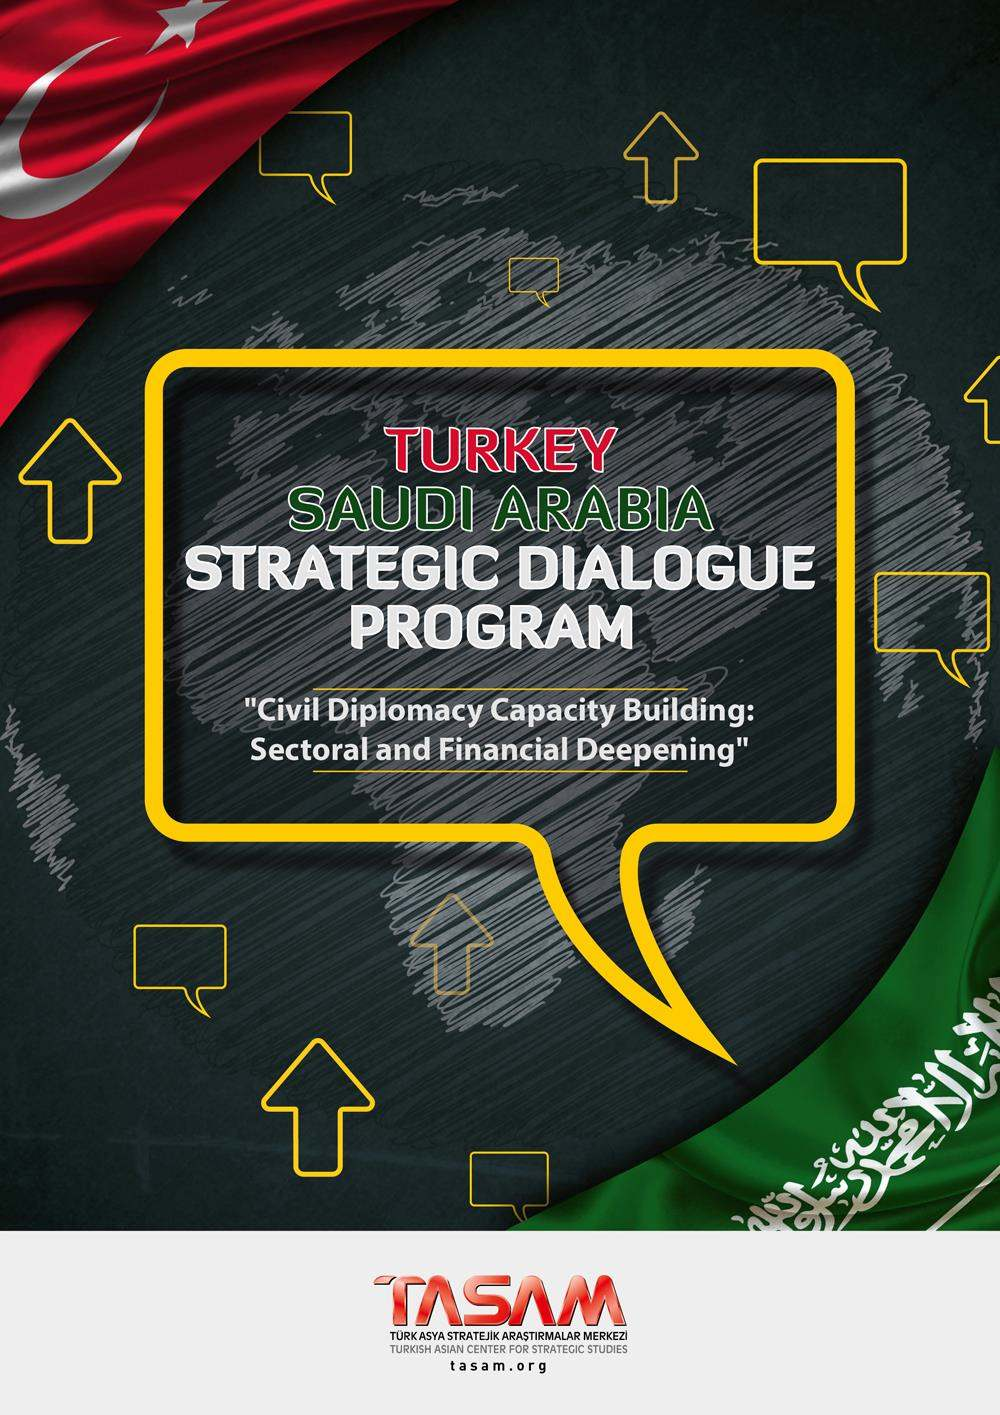 Turkey - Saudi Arabia Strategic Dialogue Program